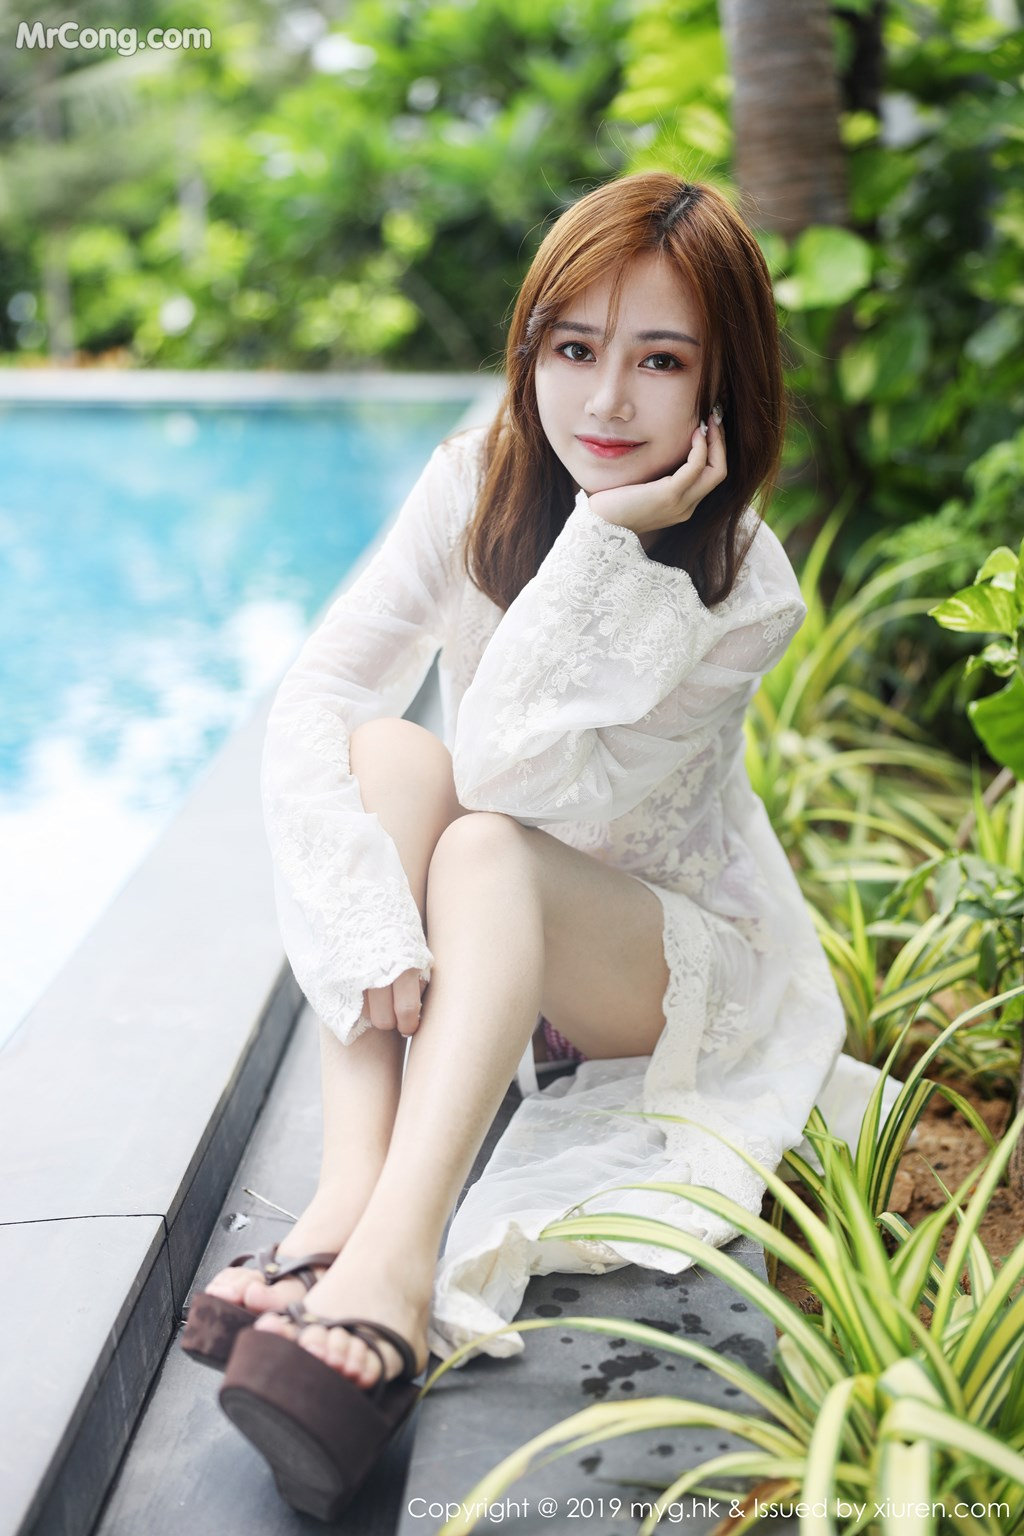 Image MyGirl-Vol.356-real-MrCong.com-006 in post MyGirl Vol.356: 羽住real (55 ảnh)